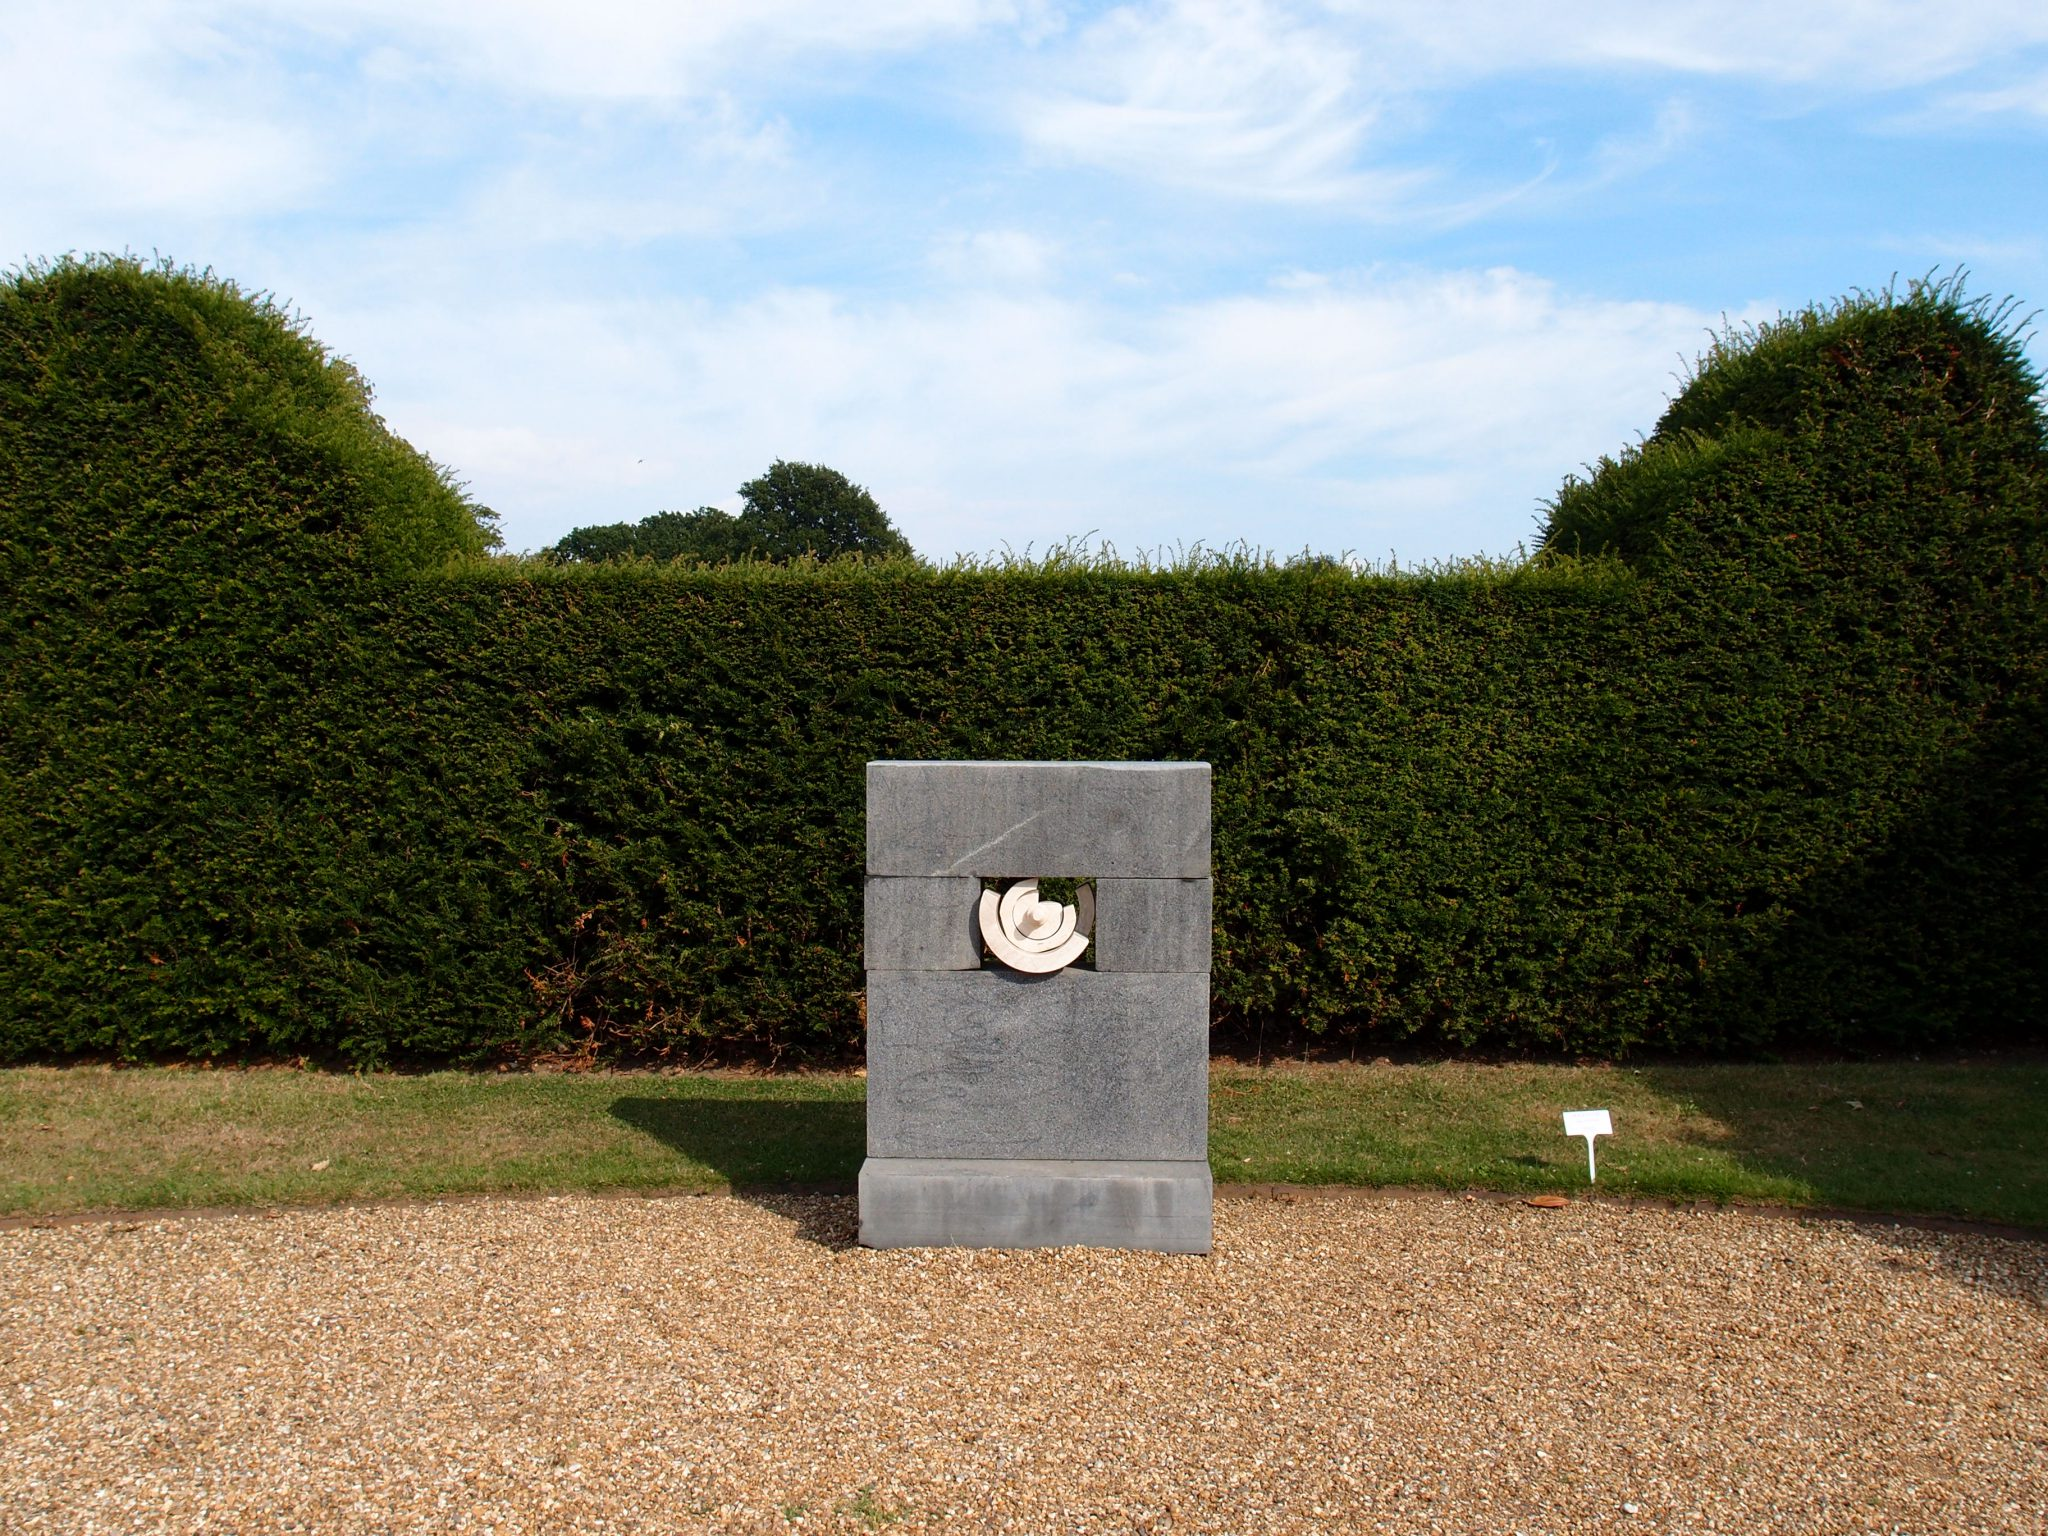 At the southern edge of the North Front Entry Court, this sculpture clearly announced that in Godinton's gardens, we would find a mixture of the classical and contemporary.